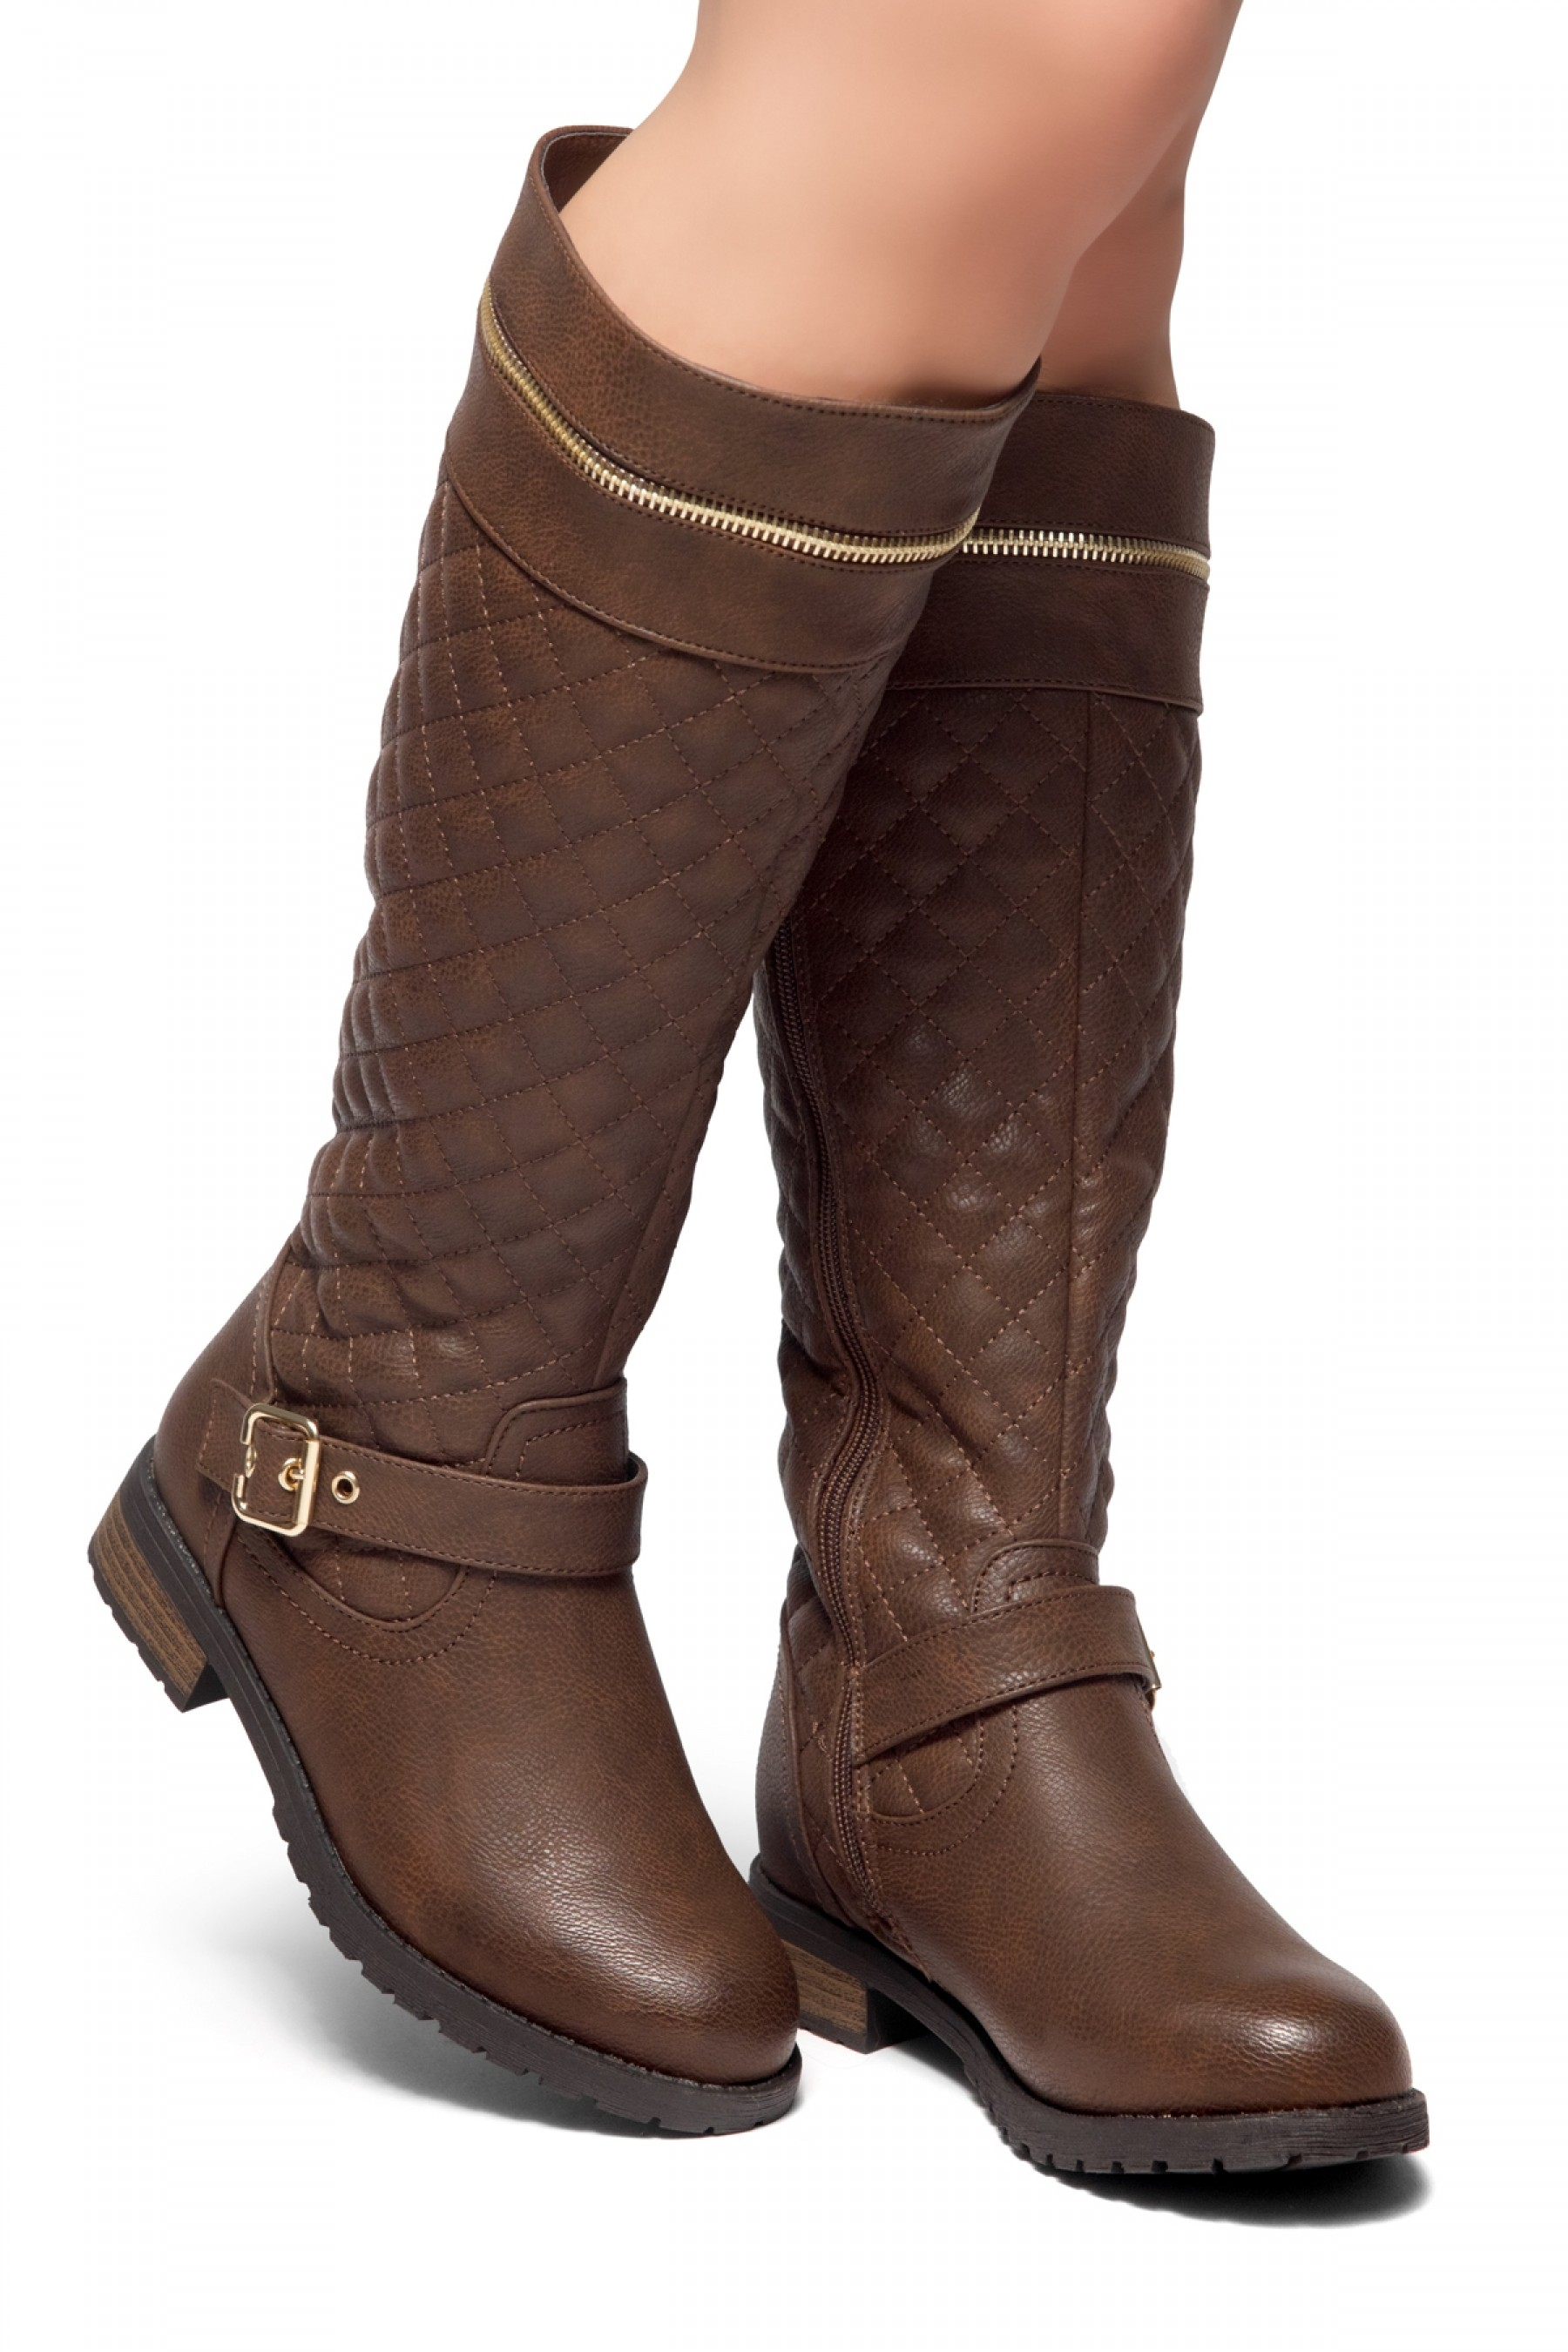 9028b59a97d6 HerStyle Street Edge-Quilted, Zipper and Buckle Trim Riding Knee ...